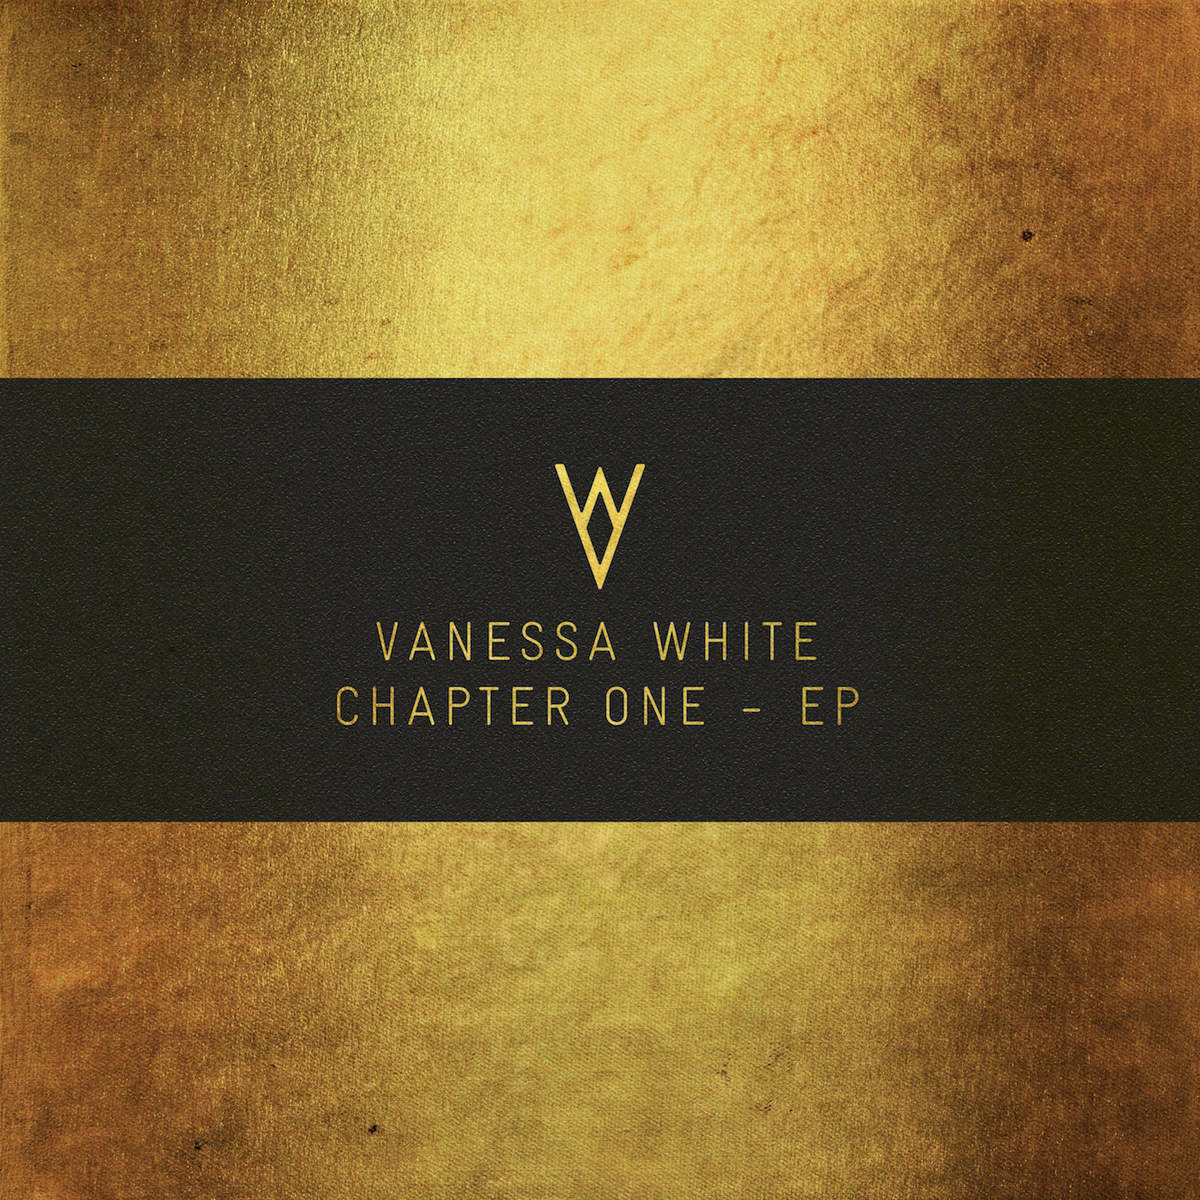 Vanessa White Chapter One EP